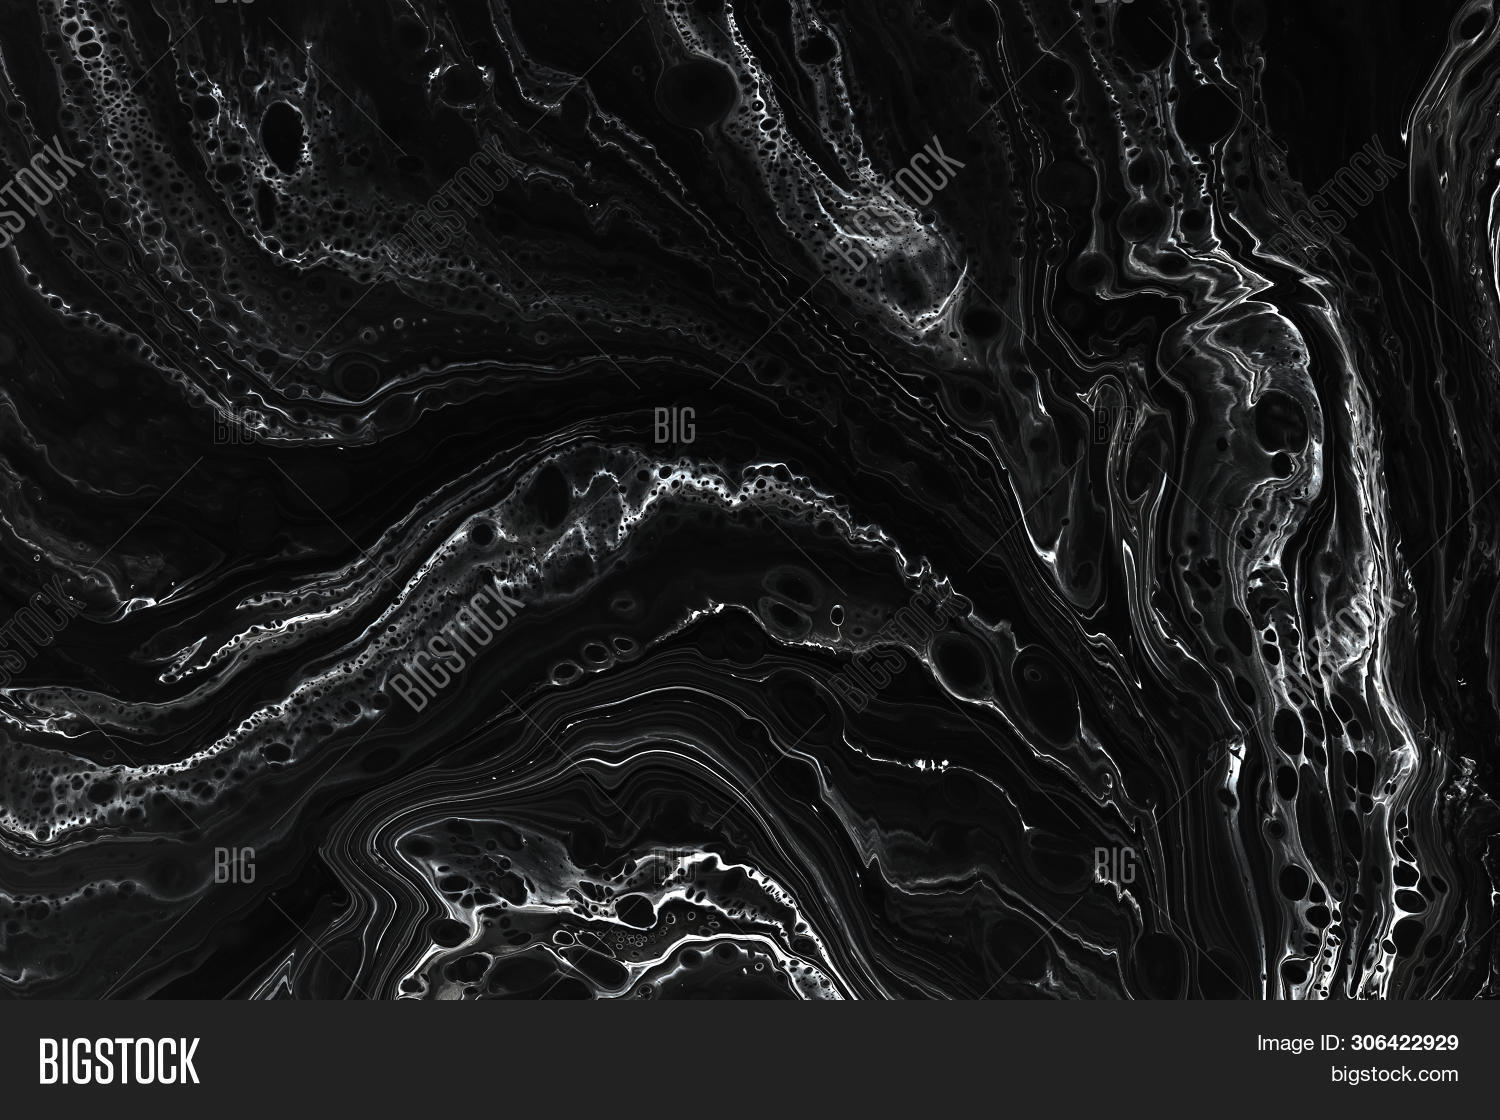 Abstract Black Marble Image Photo Free Trial Bigstock